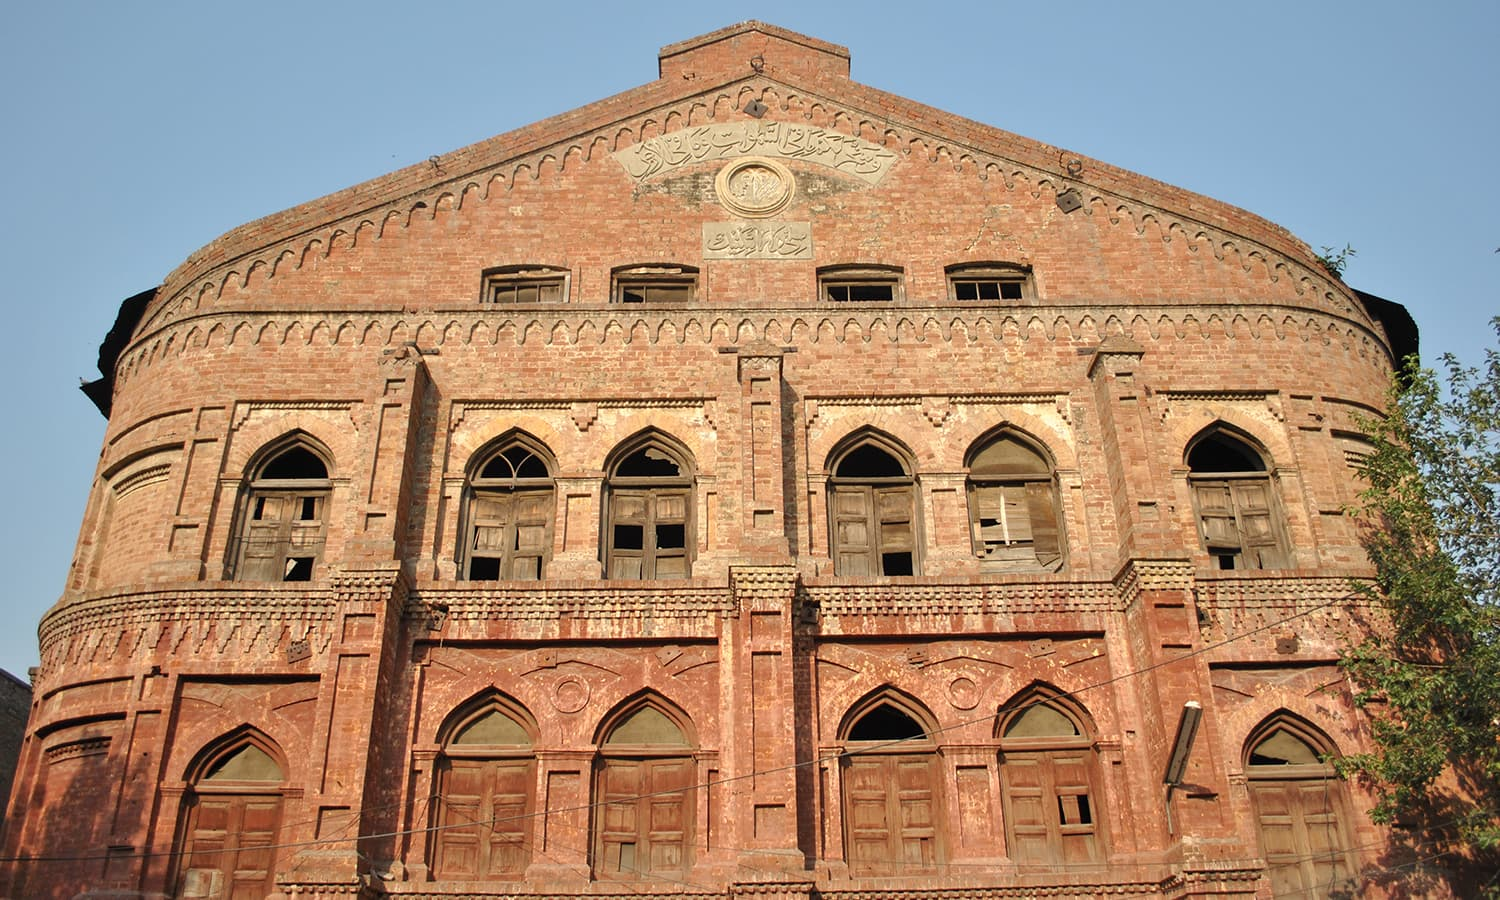 The front facade of the building.